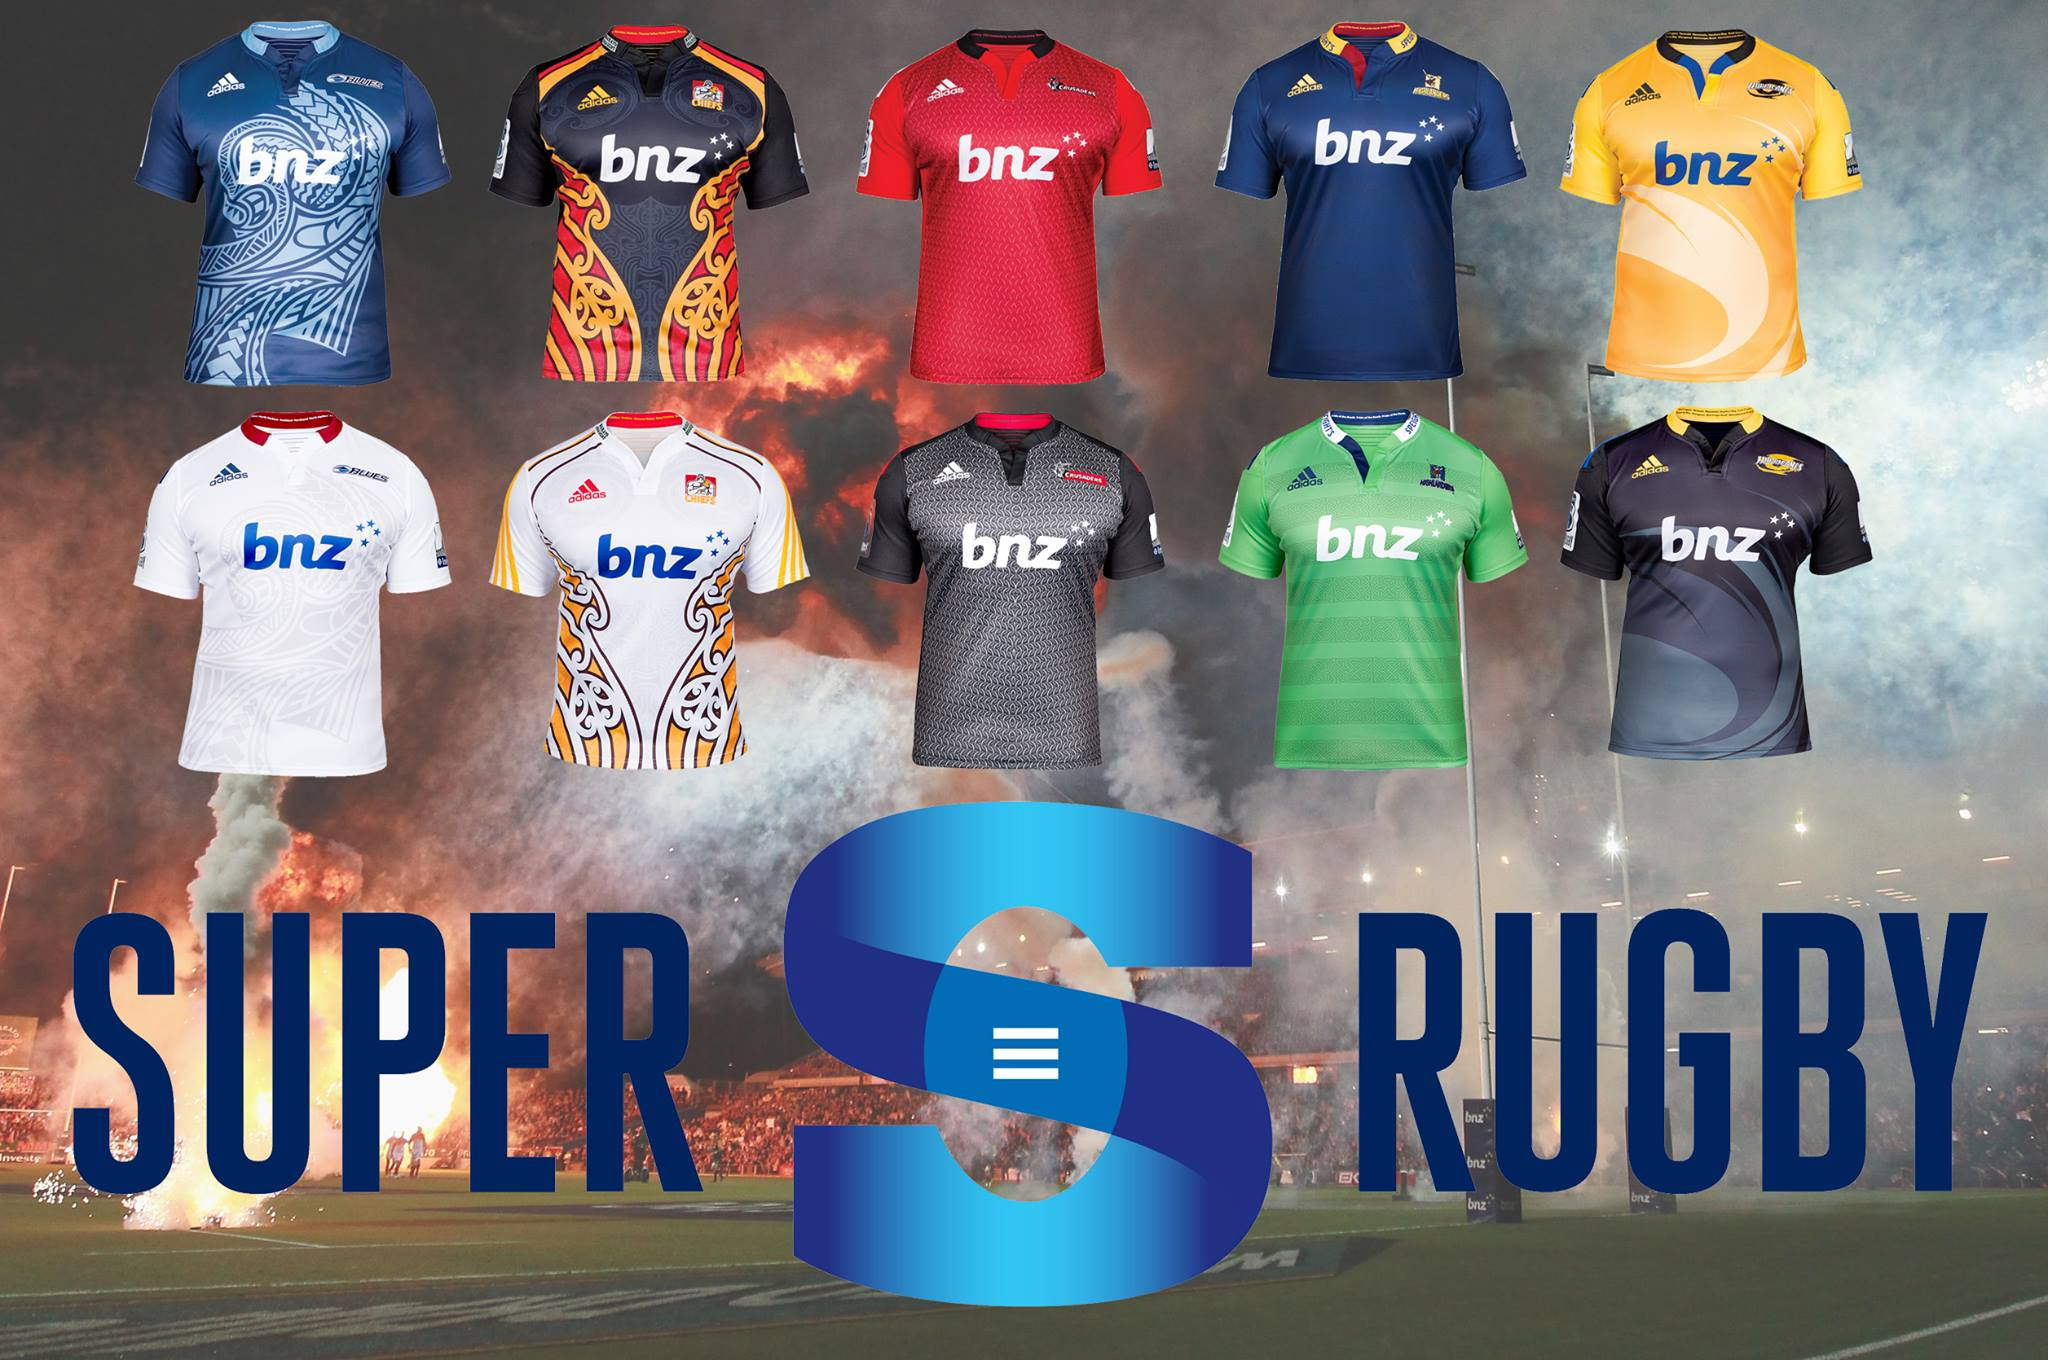 10c4a1a83ce Super 15 Rugby Gear of Dragonsfootball17